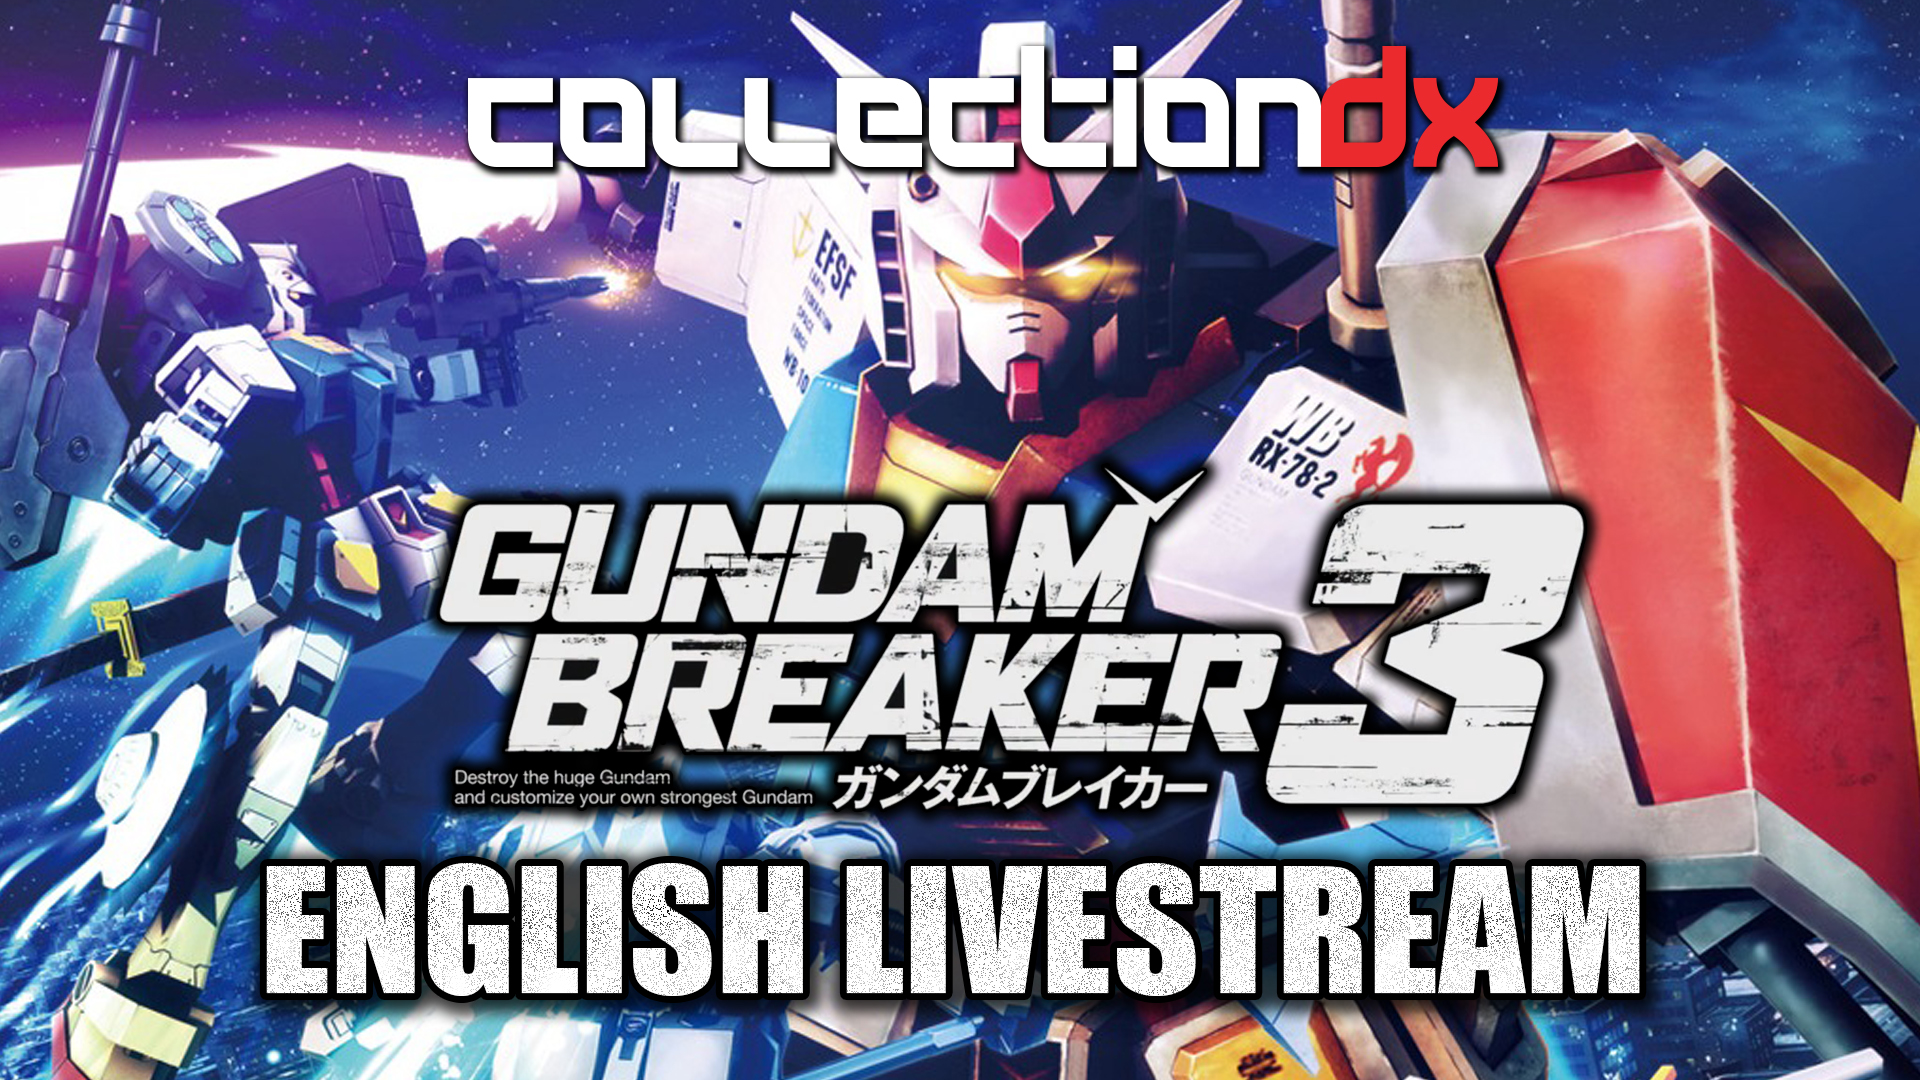 CollectionDX Gundam Breaker 3 English Livestream